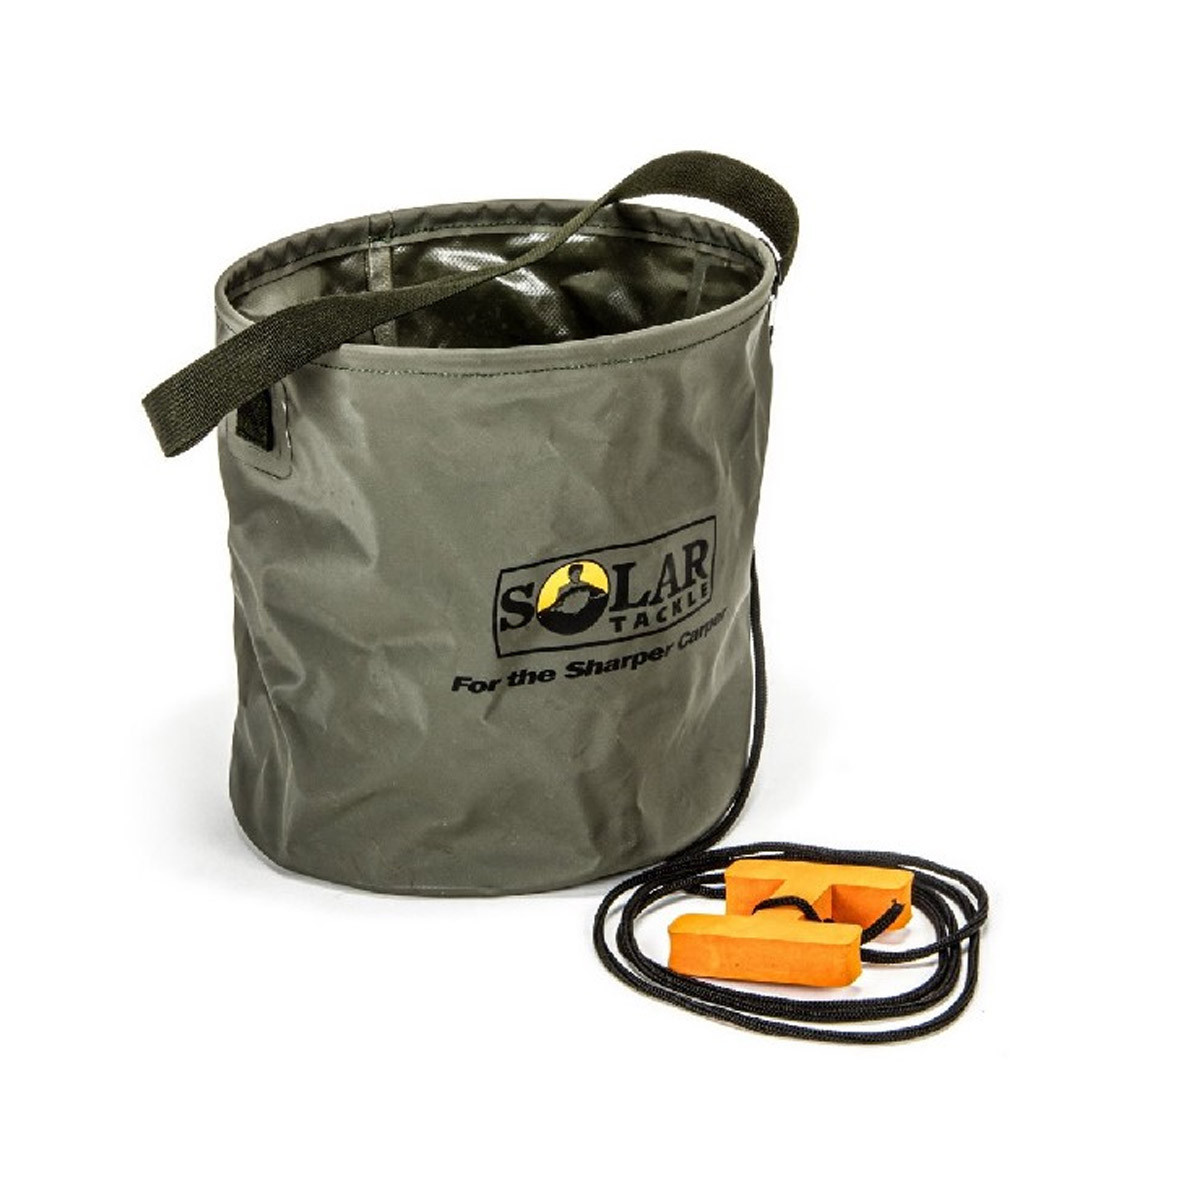 Solar Bankmaster Collapsable Water Bucket 10L